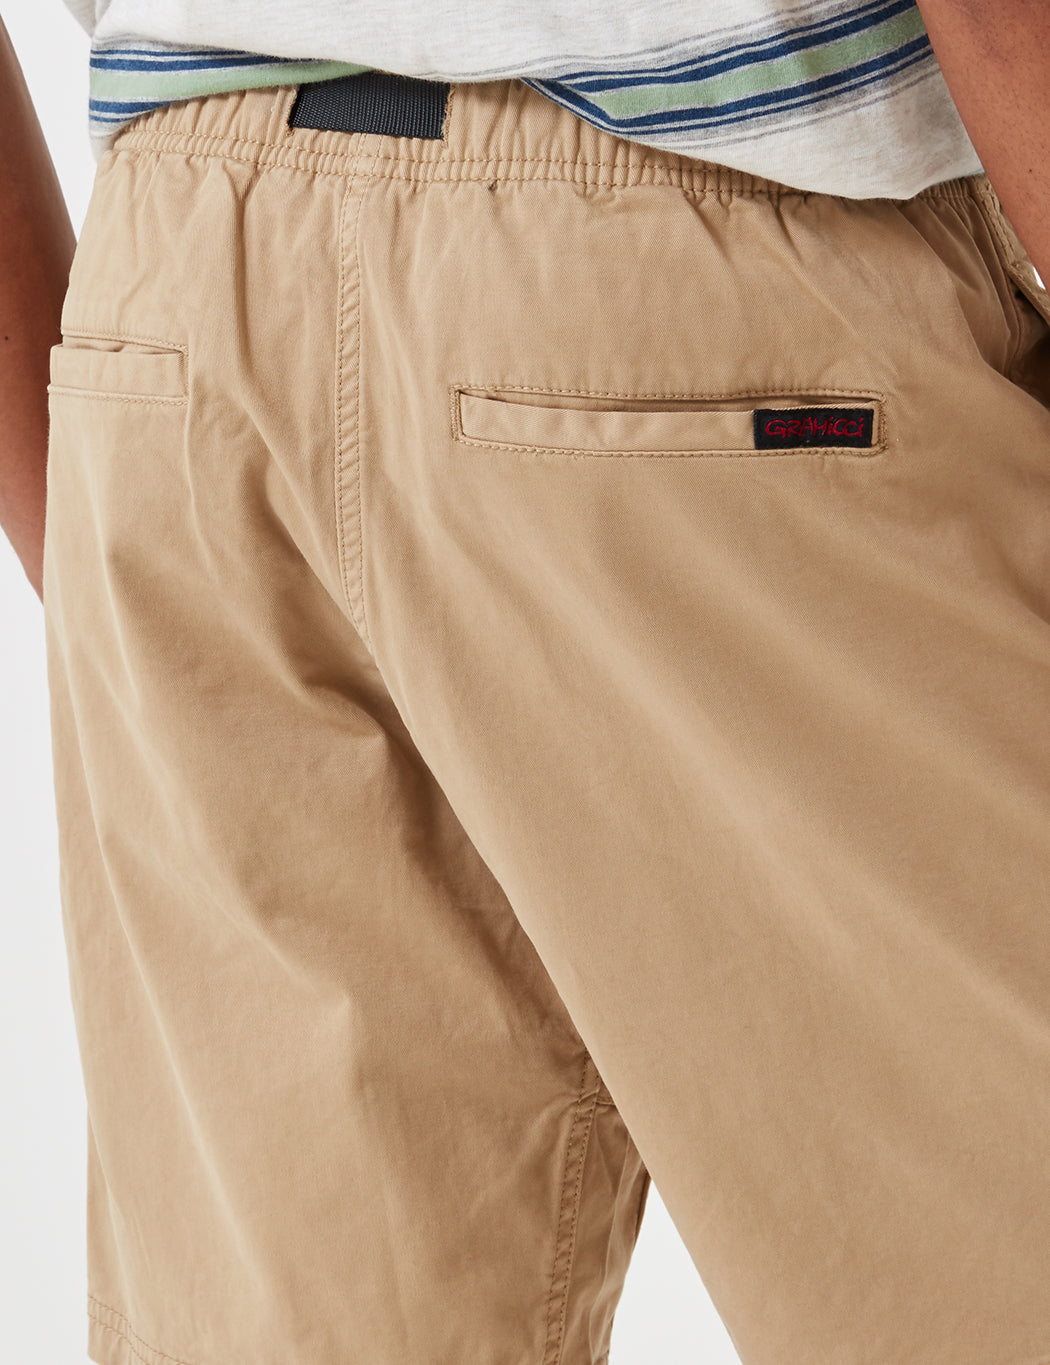 Gramicci NN-Shorts (Relaxed) - Chino Beige